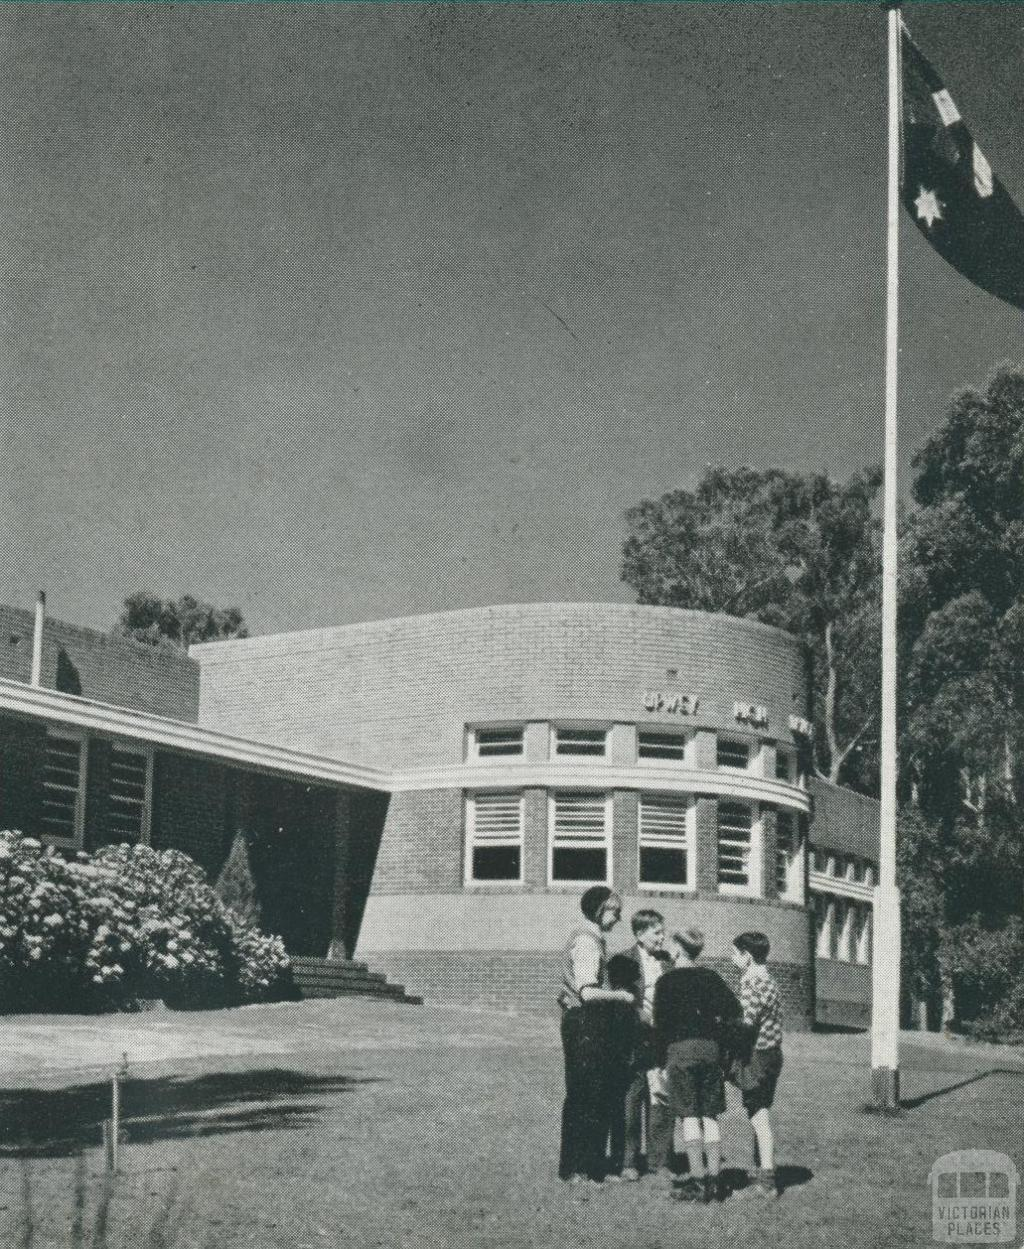 Upwey High School, 1955